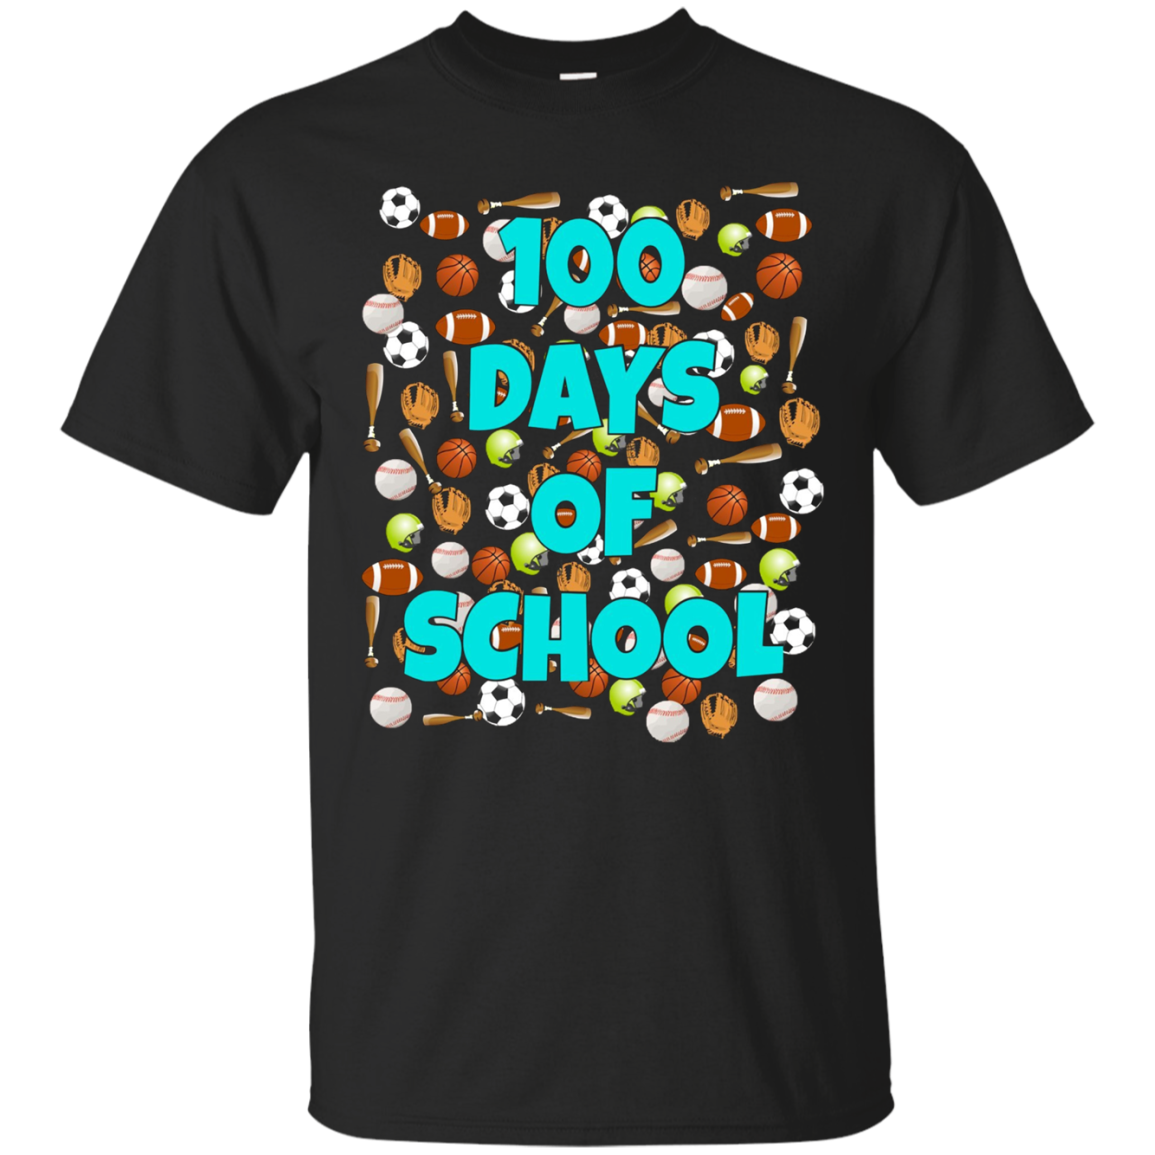 100 Days of School T Shirt for kids or teachers - Sports